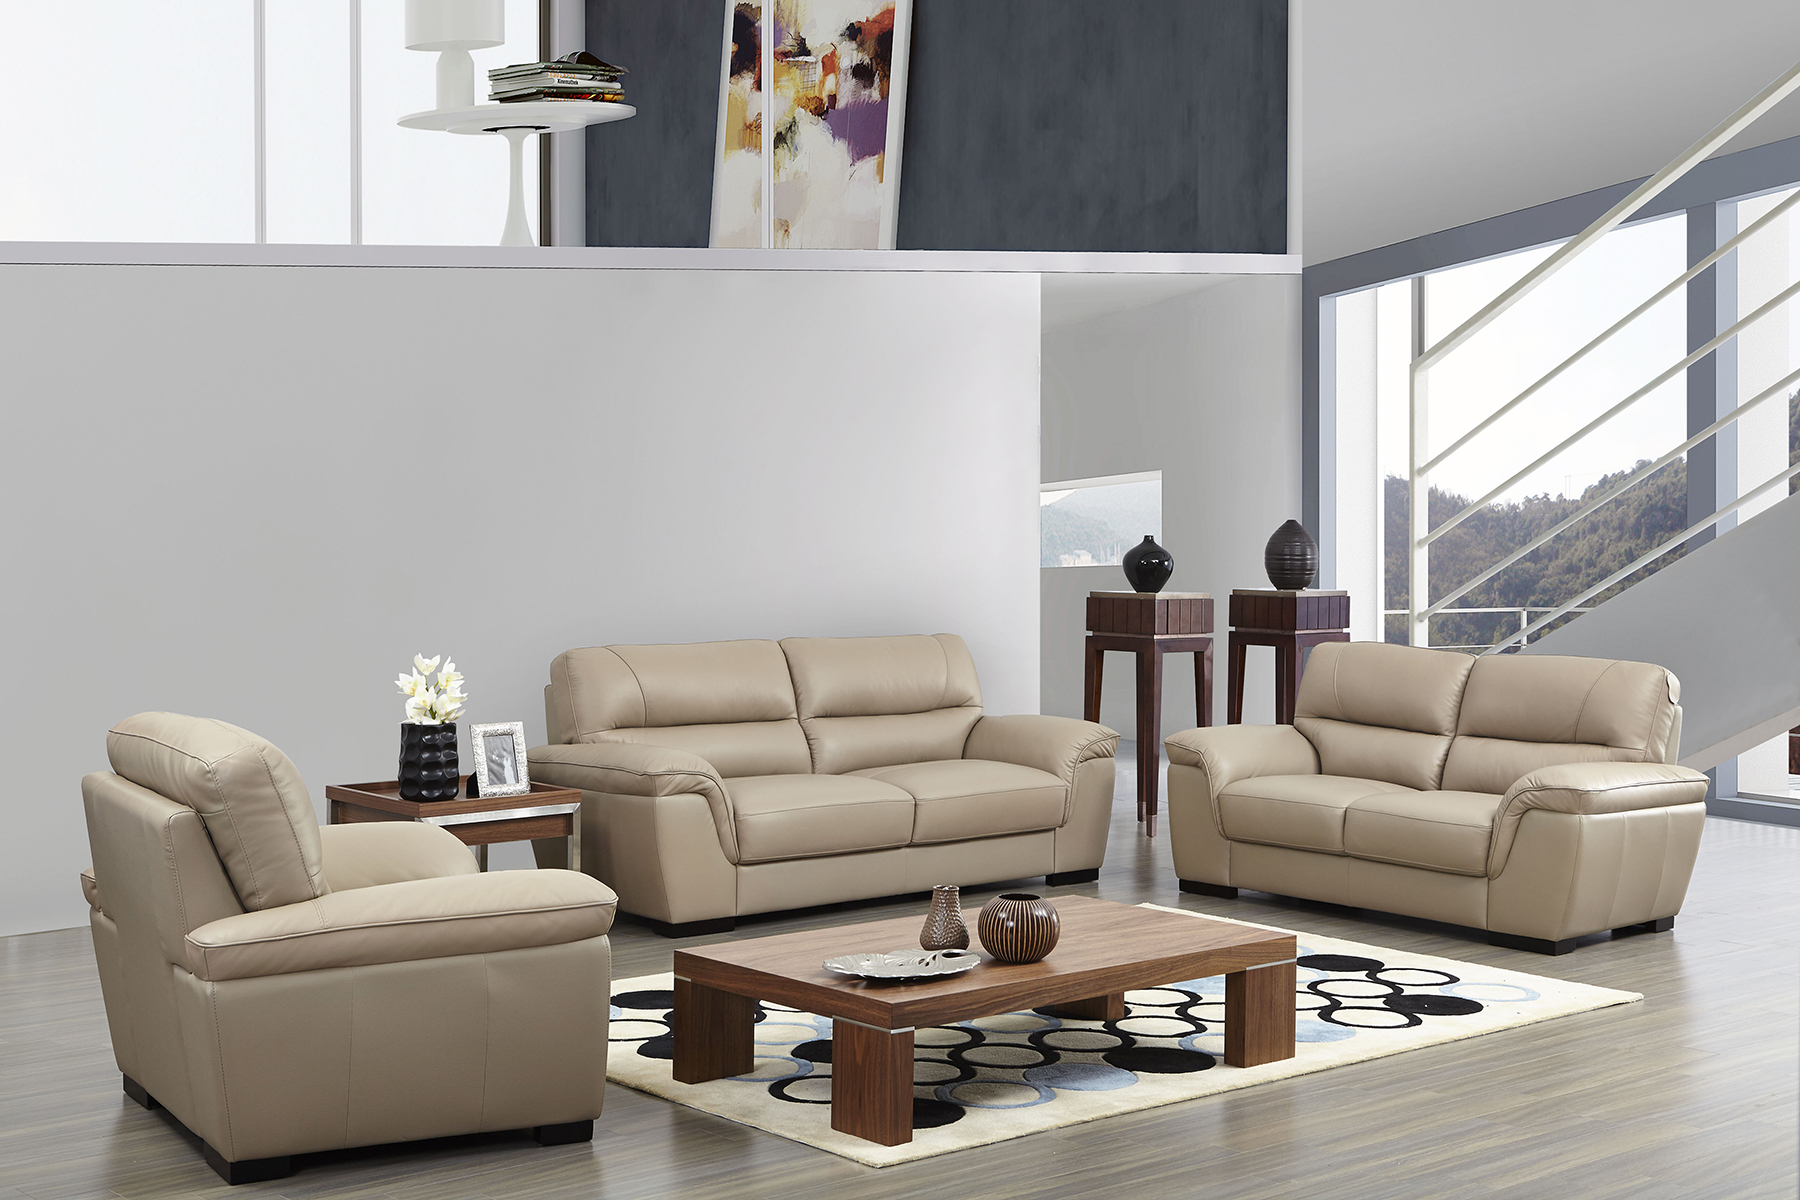 modern living room sets inside unique design | Contemporary Beige Leather Stylish Sofa Set with Wooden ...